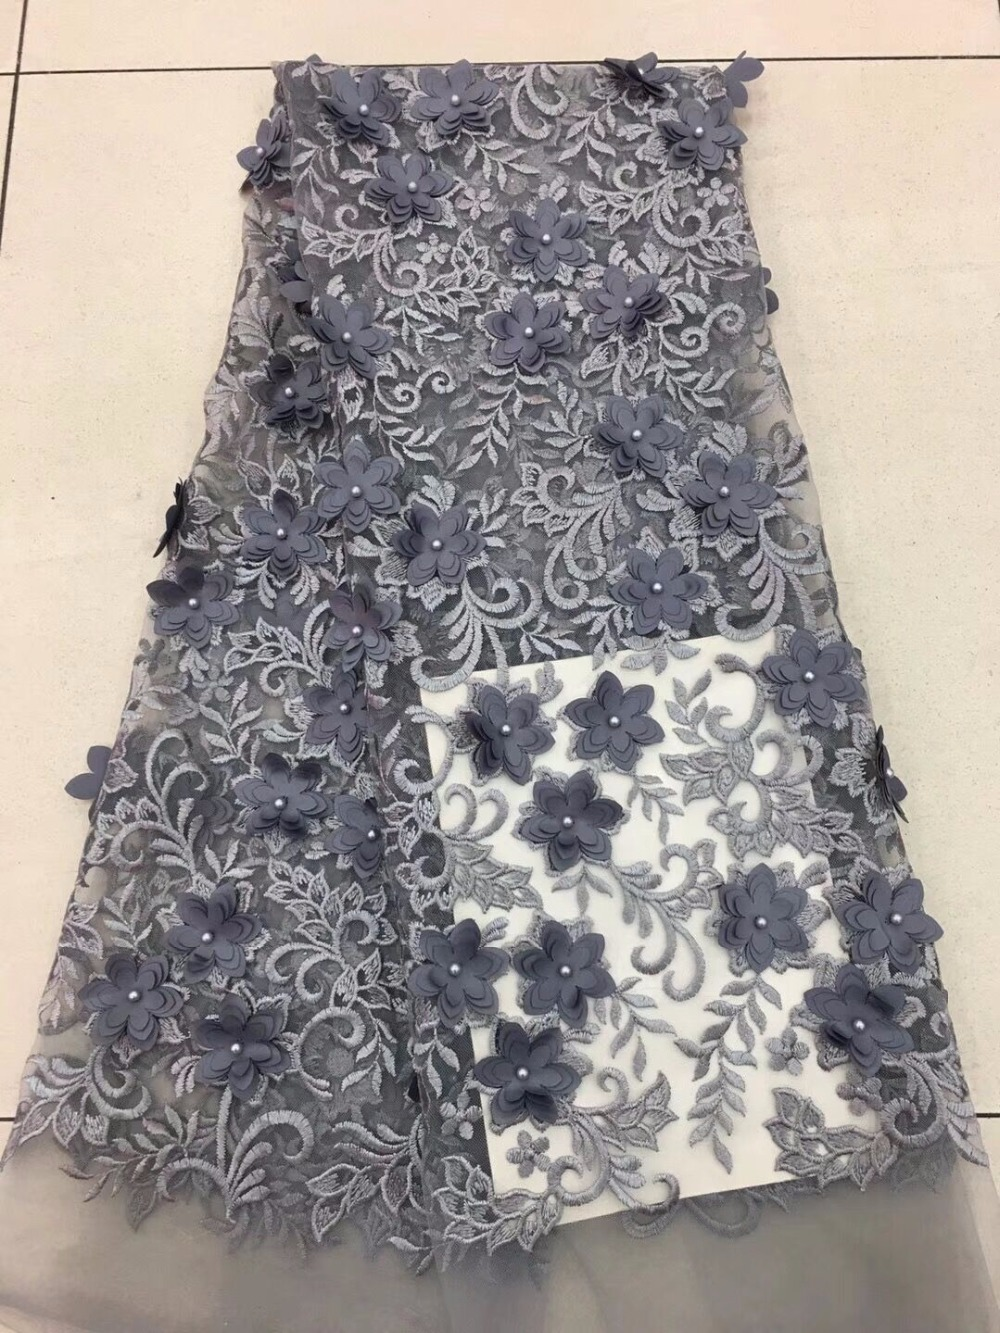 Nice African 3d Flower Lace Fabric 2019 High Quality French Lace Fabric With Stones Embroidery Lace Fabric For Women Dress Dpa30-1 Apparel Sewing & Fabric